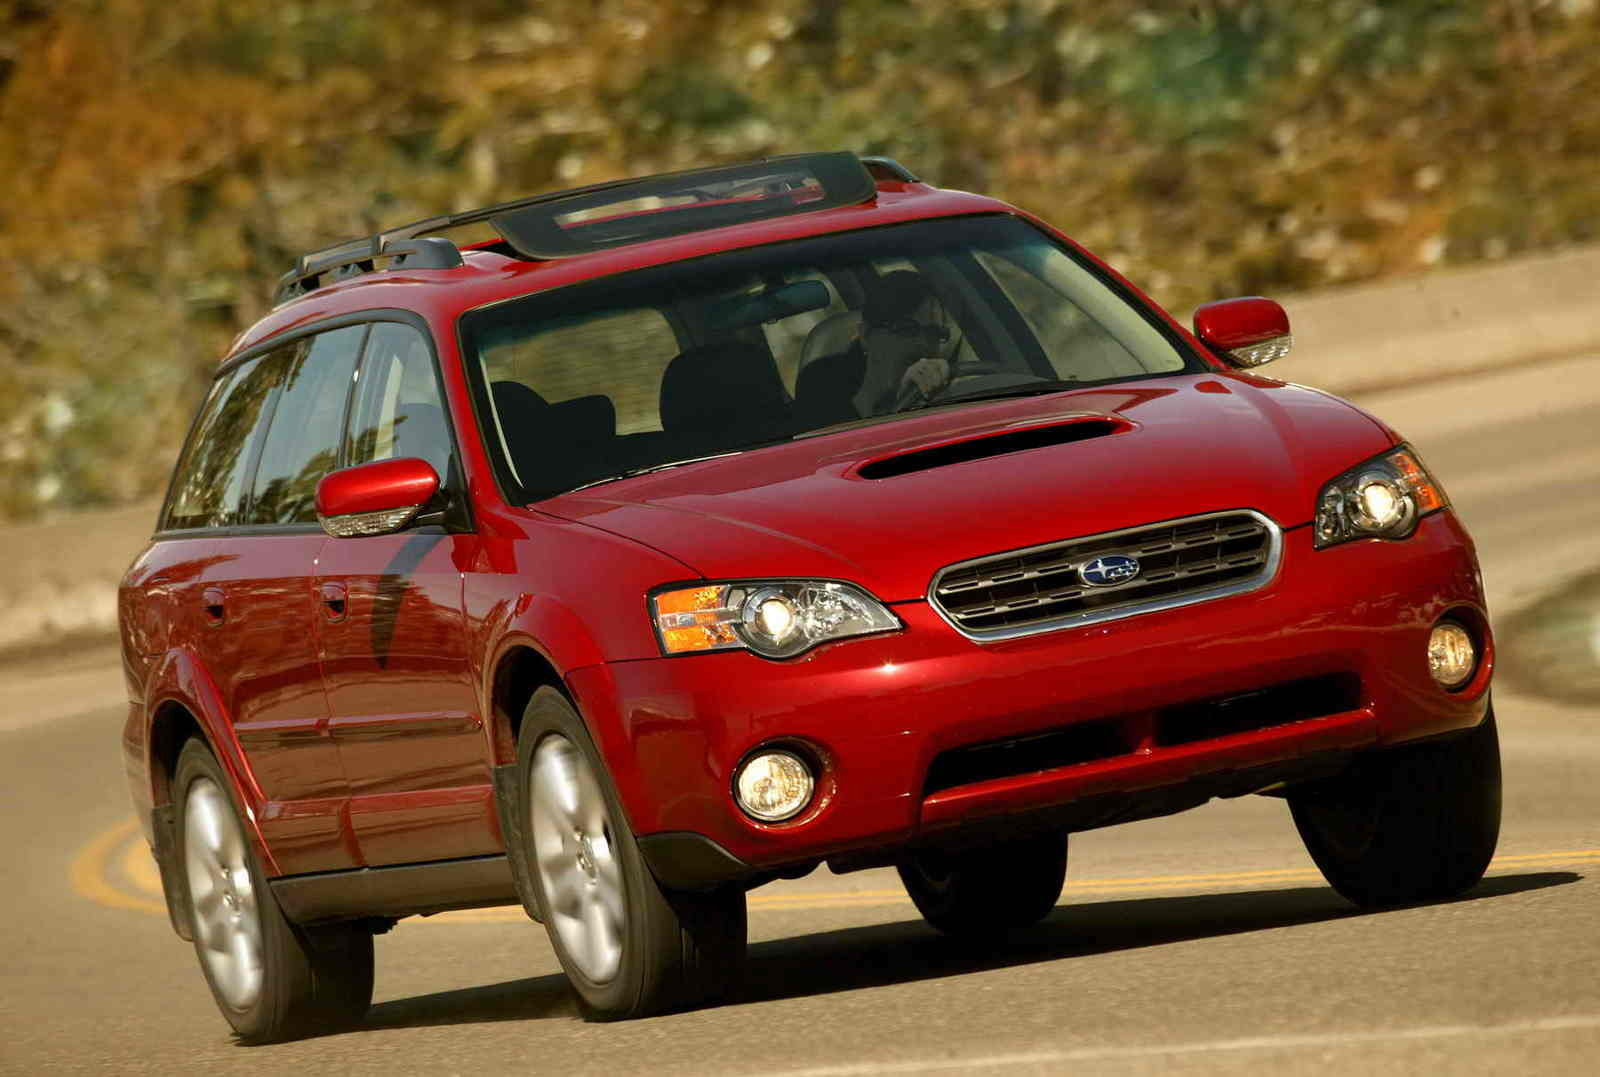 2006 subaru outback picture 44226 car review top speed. Black Bedroom Furniture Sets. Home Design Ideas